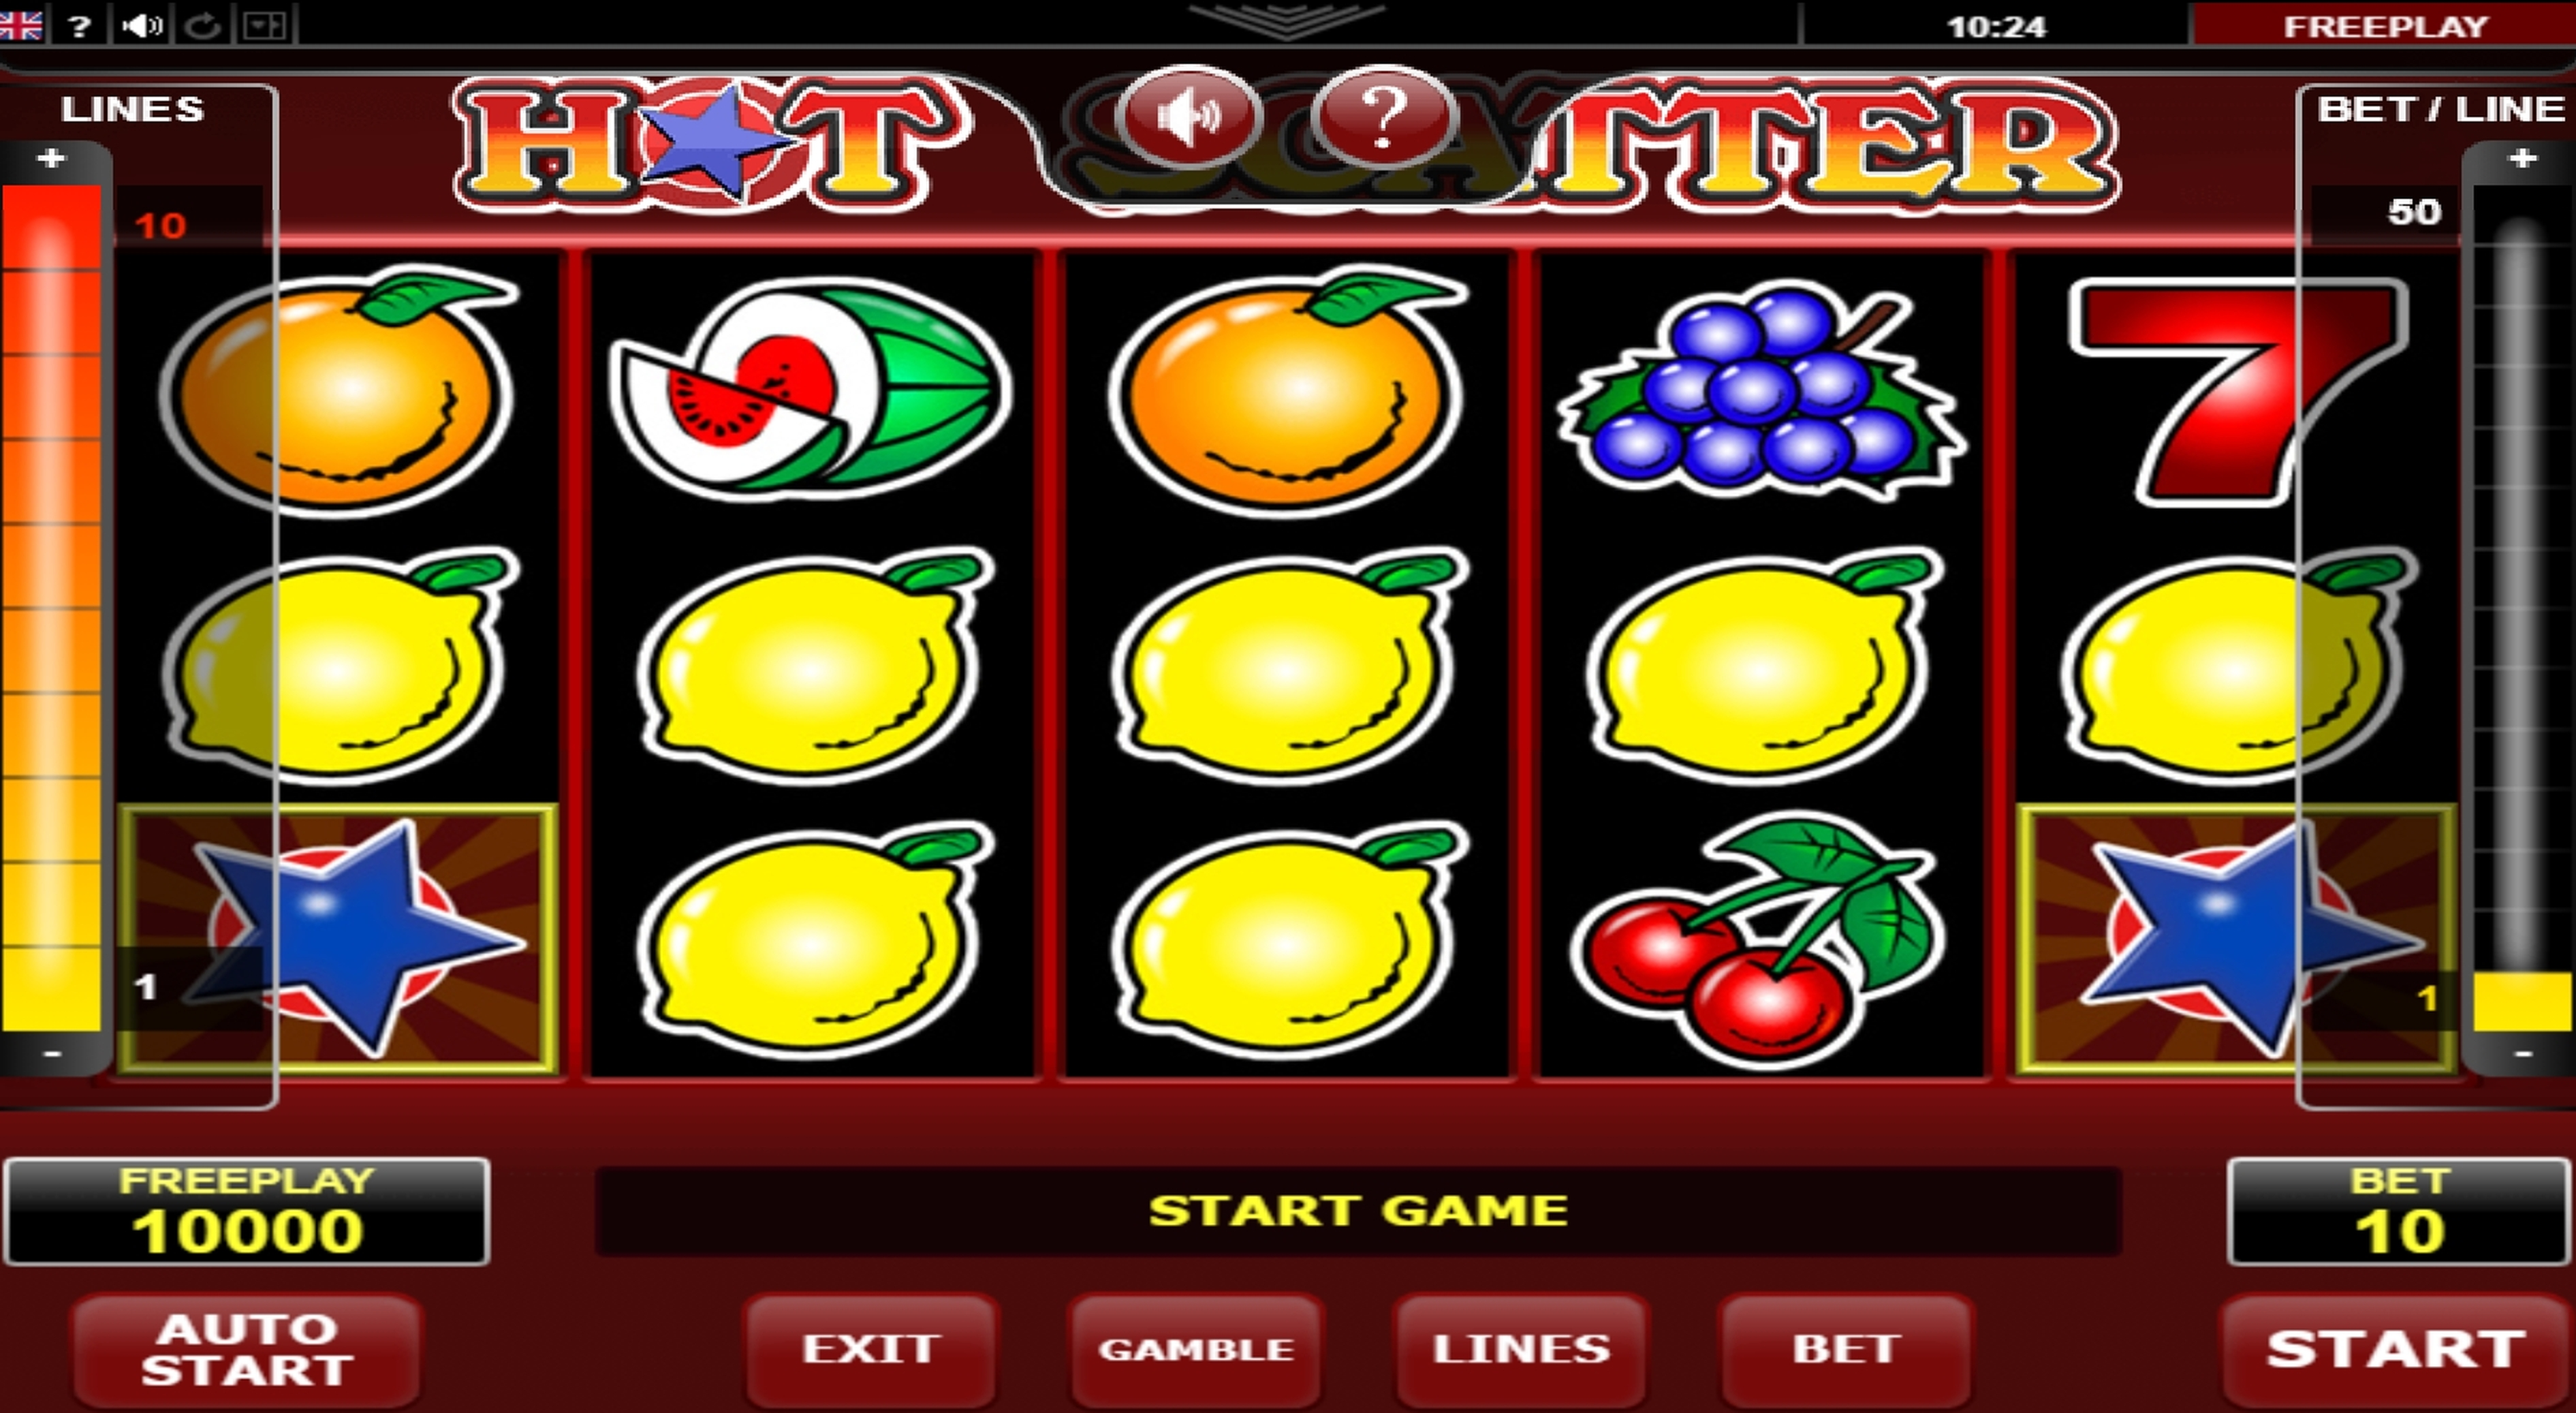 Reels in Hot Scatter Slot Game by Amatic Industries